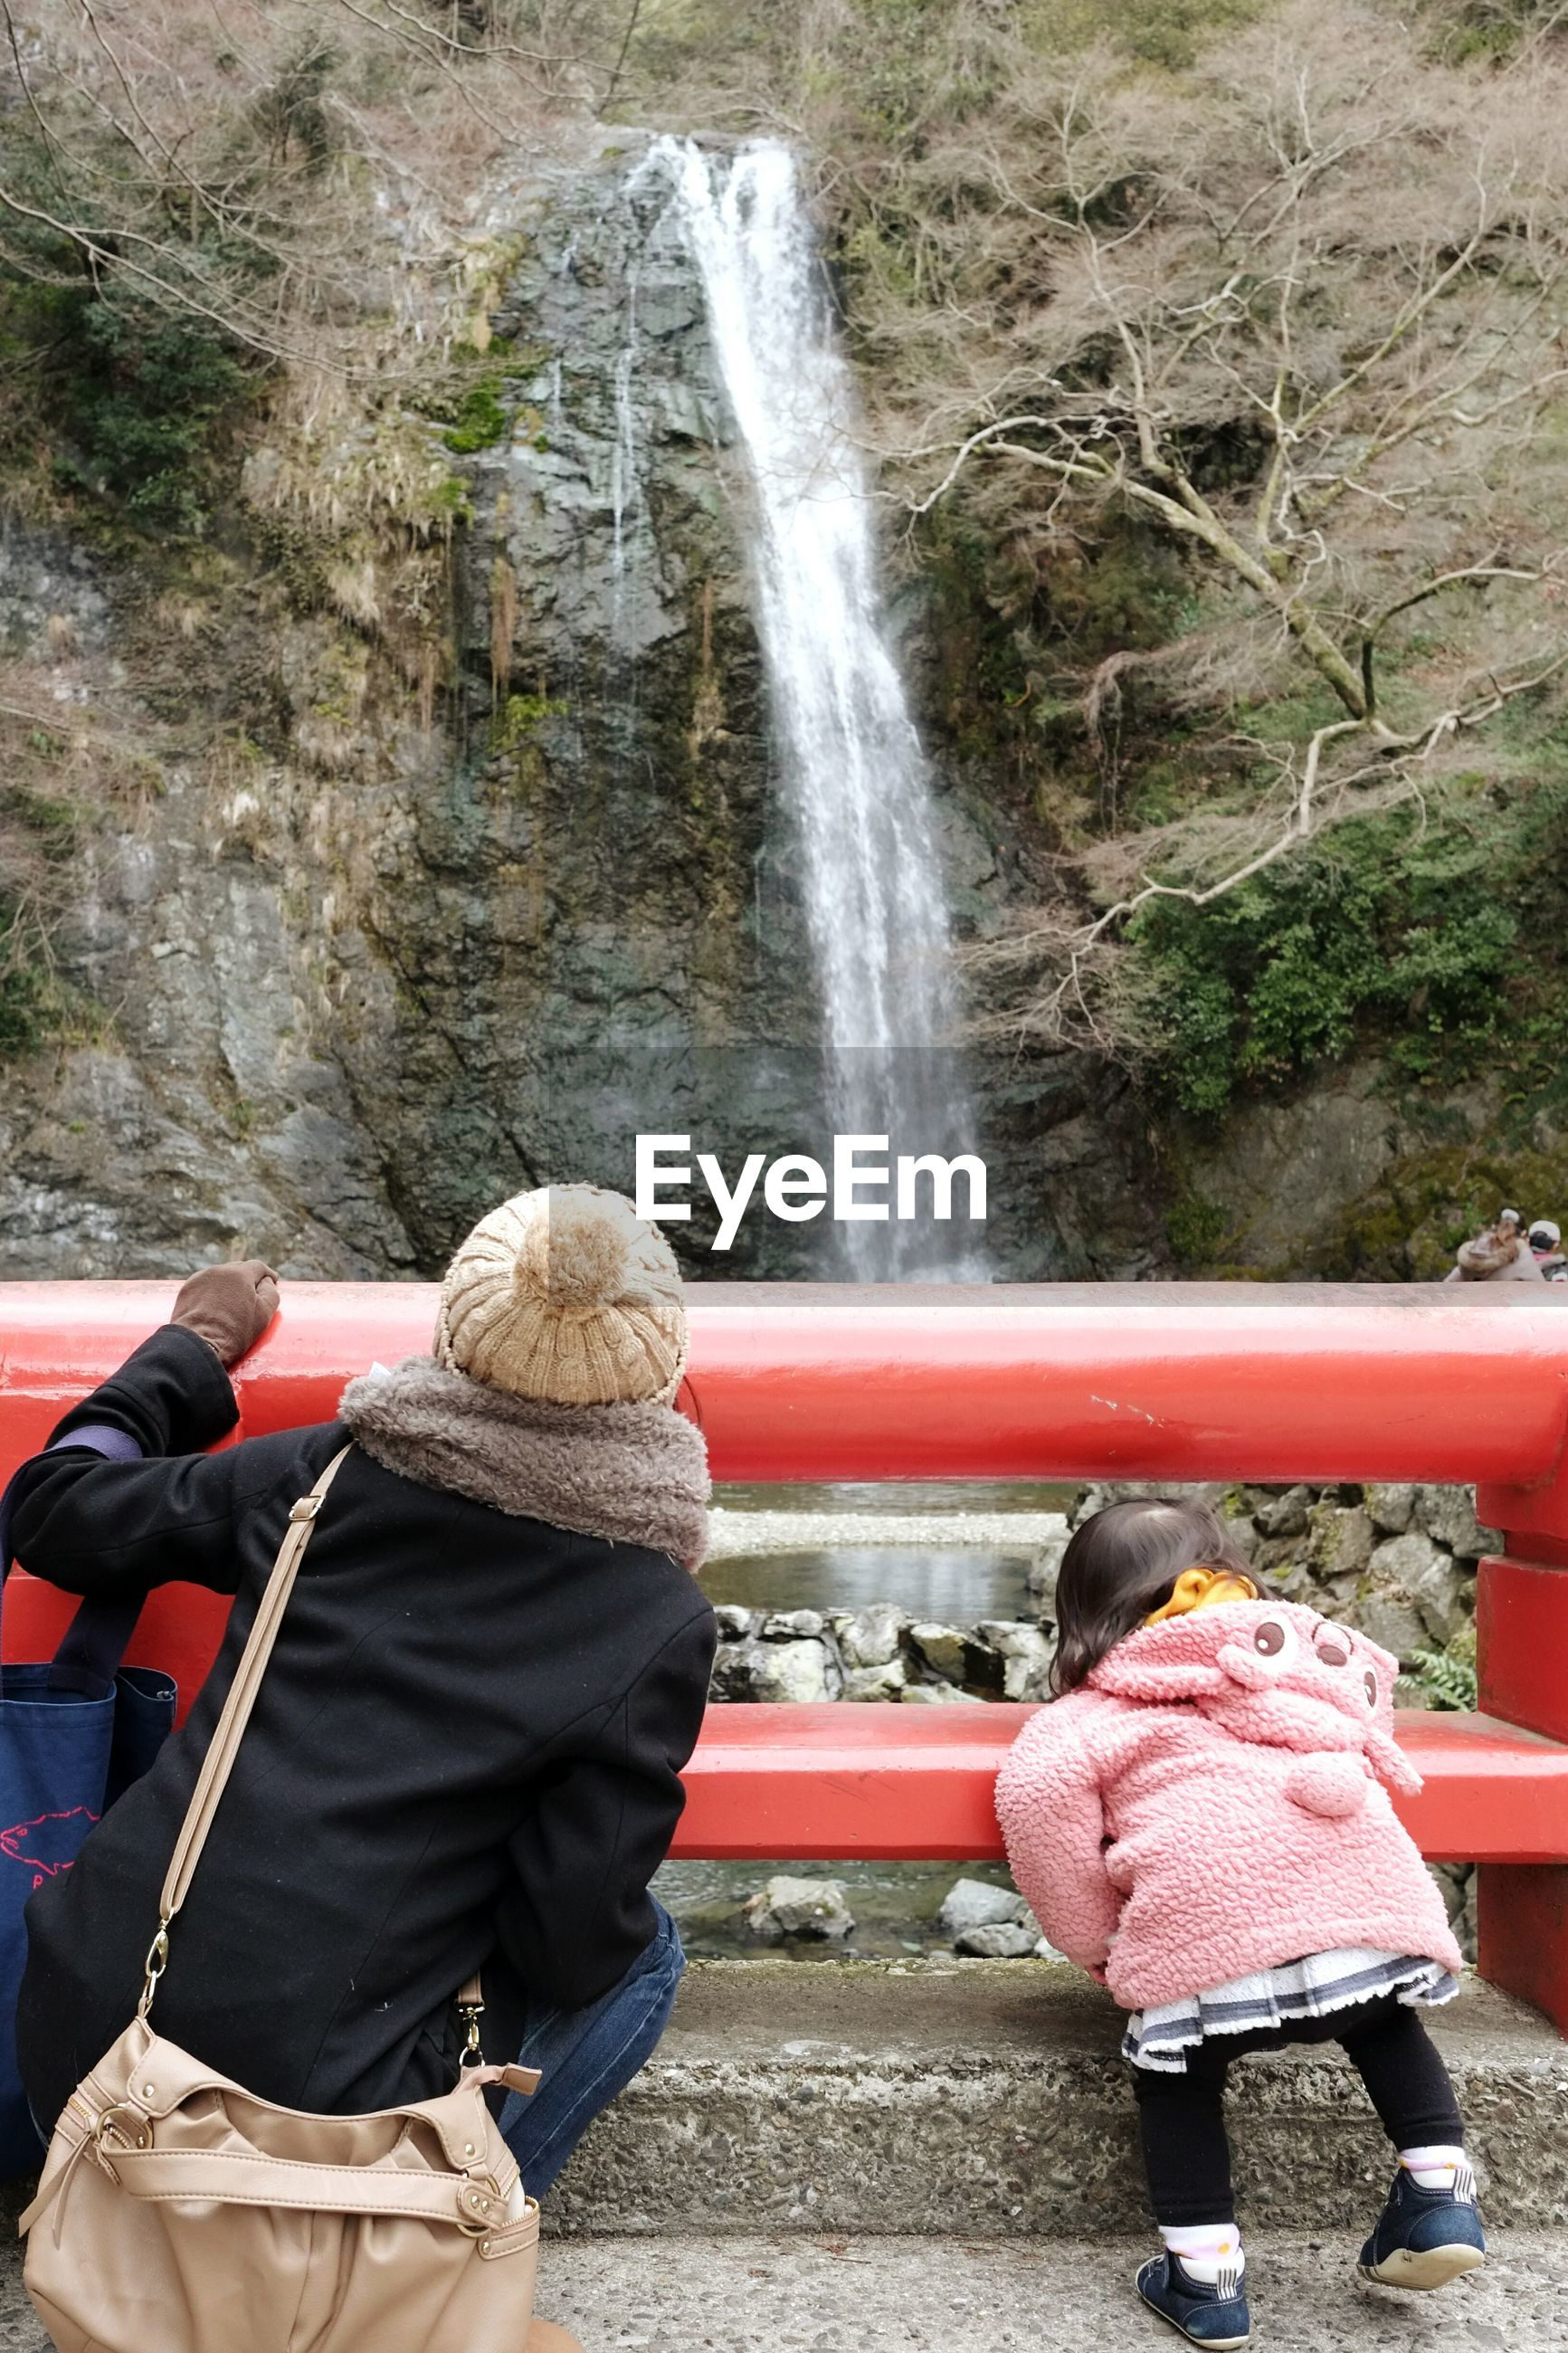 motion, waterfall, leisure activity, lifestyles, rear view, casual clothing, full length, person, tourism, flowing water, day, outdoors, flowing, beauty in nature, natural landmark, stone material, scenics